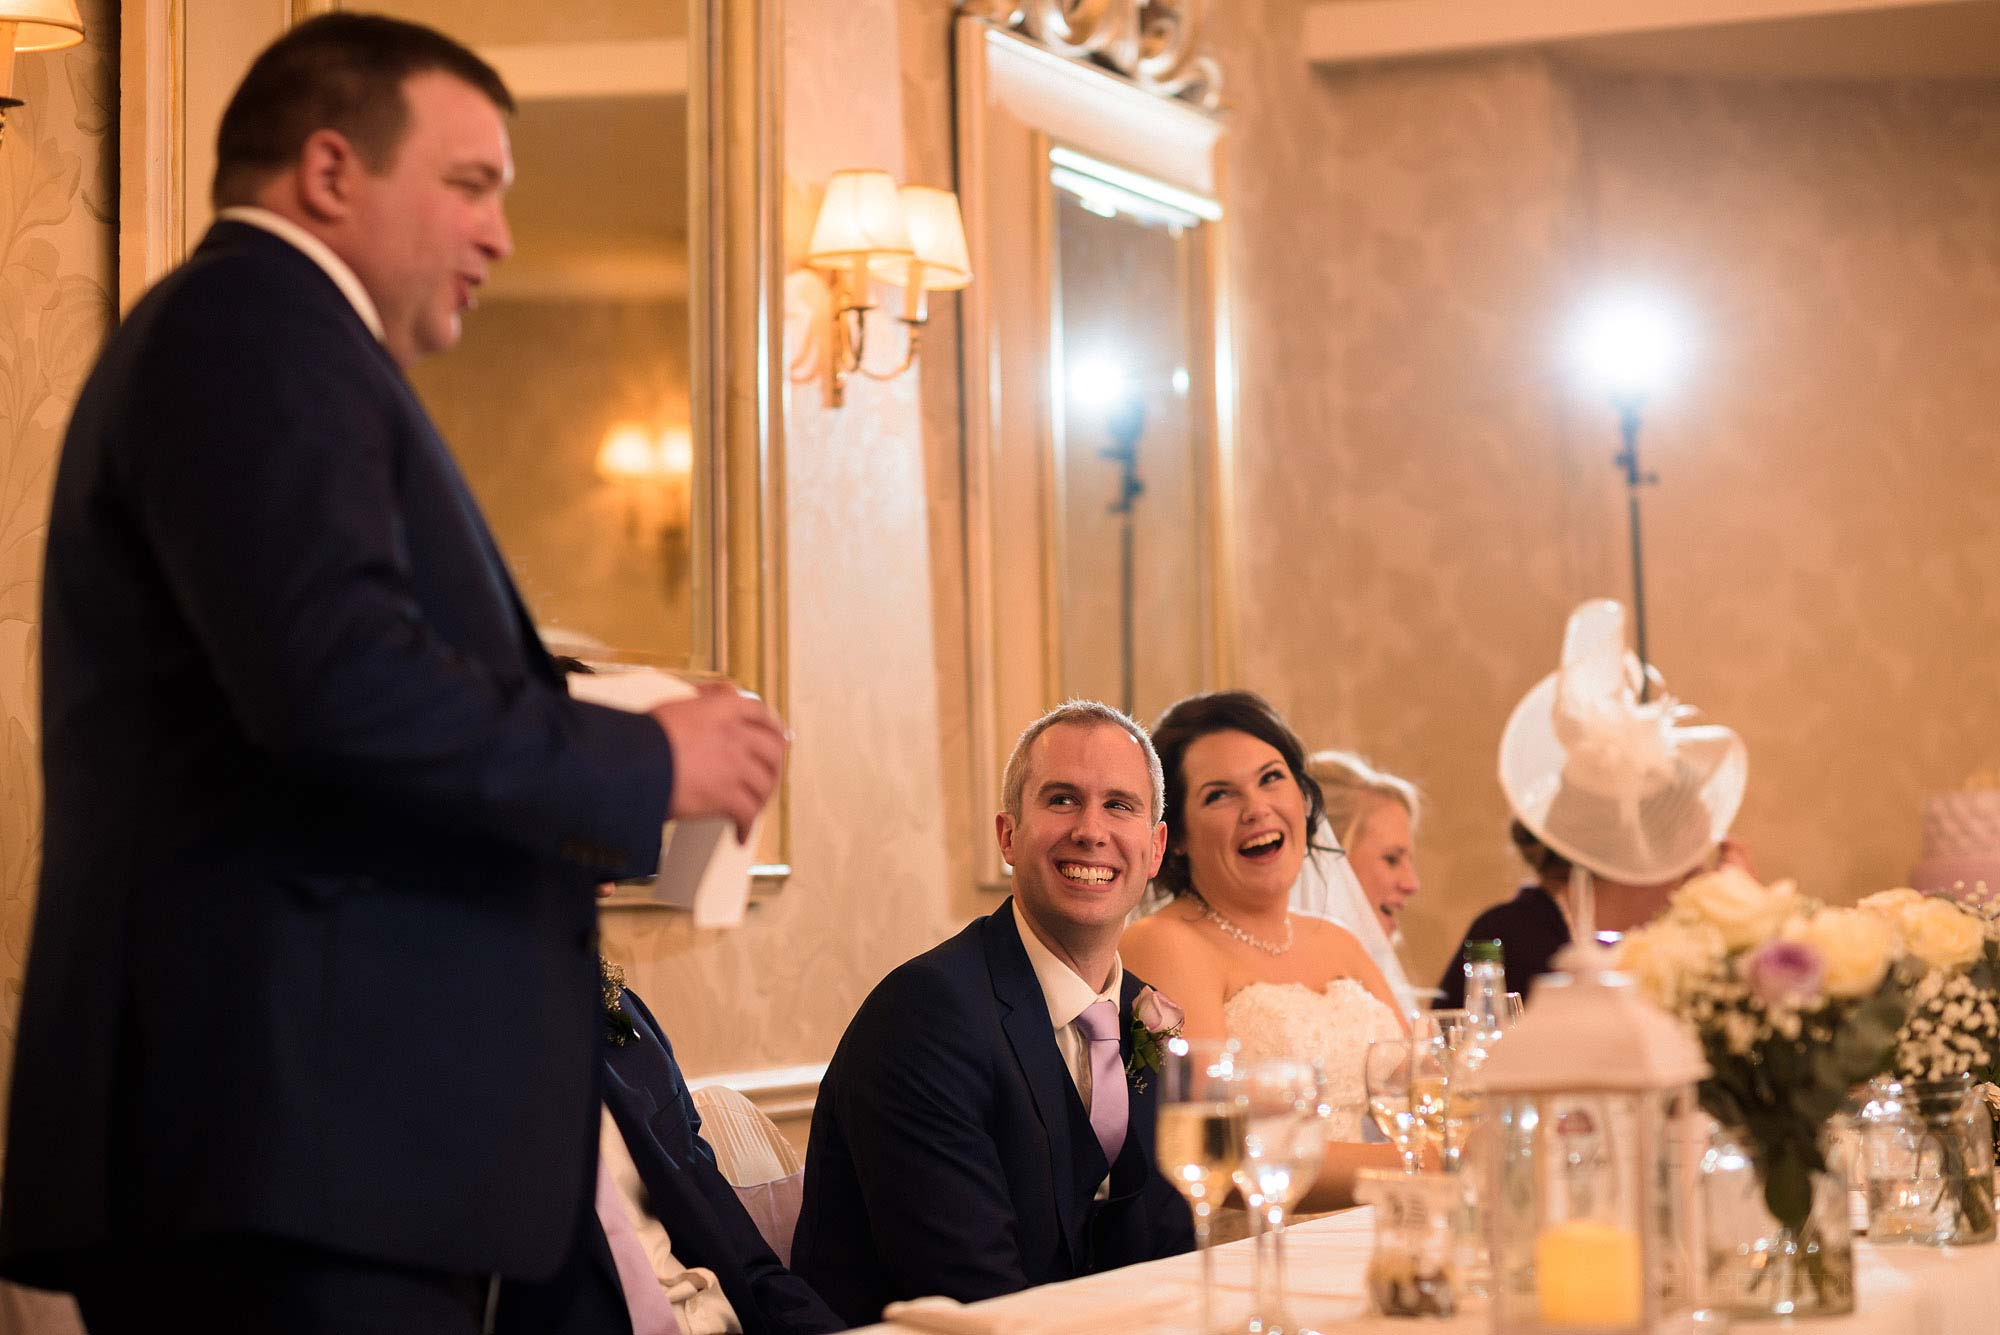 top table laughing and smiling during best man's speech